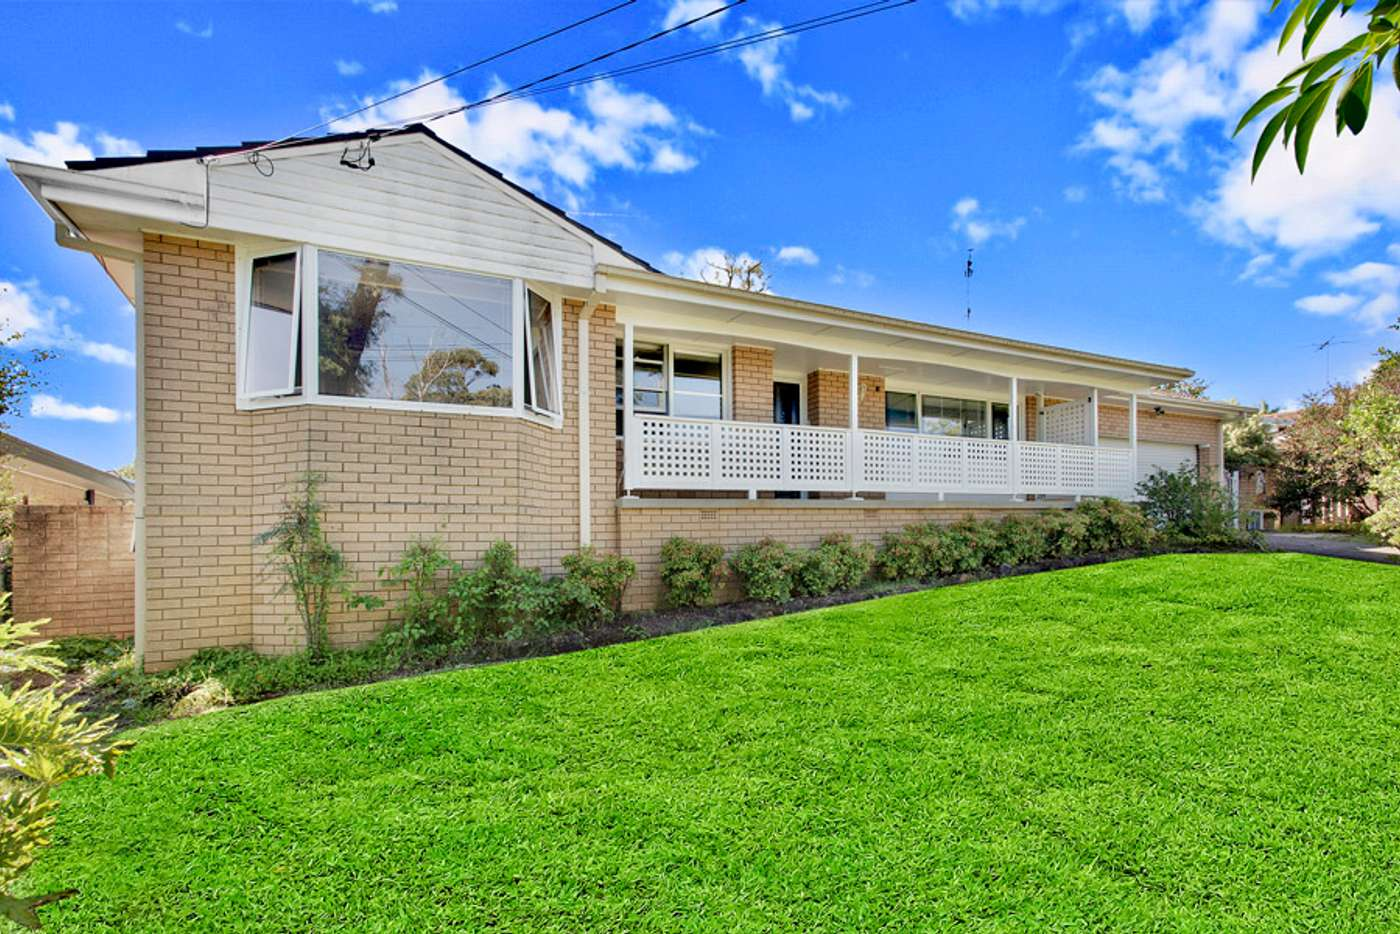 Main view of Homely house listing, 116 Duneba Drive, Westleigh NSW 2120